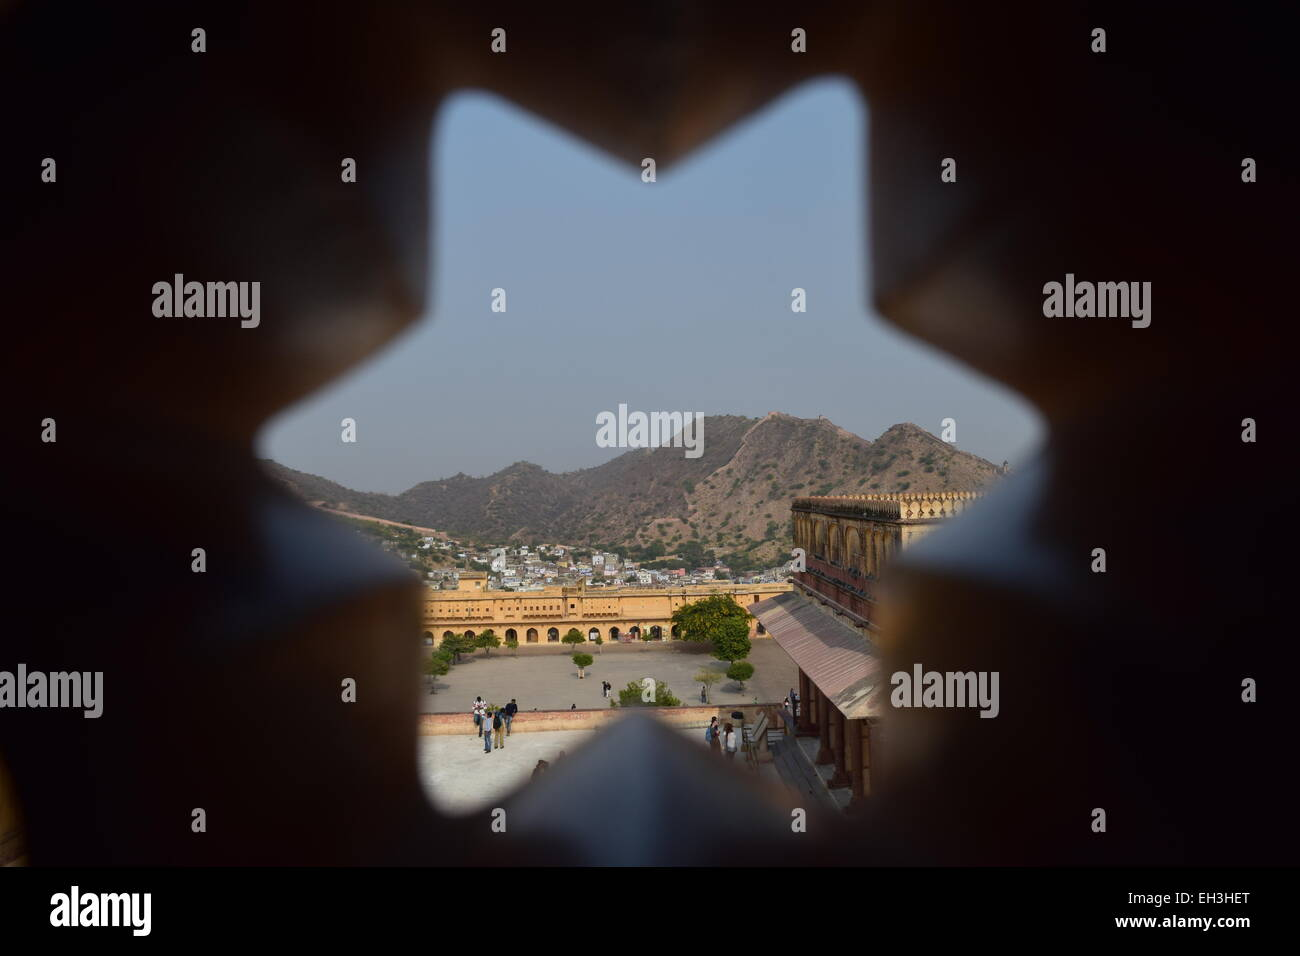 View of Amer Fort / Palace through a star-hole. - Stock Image